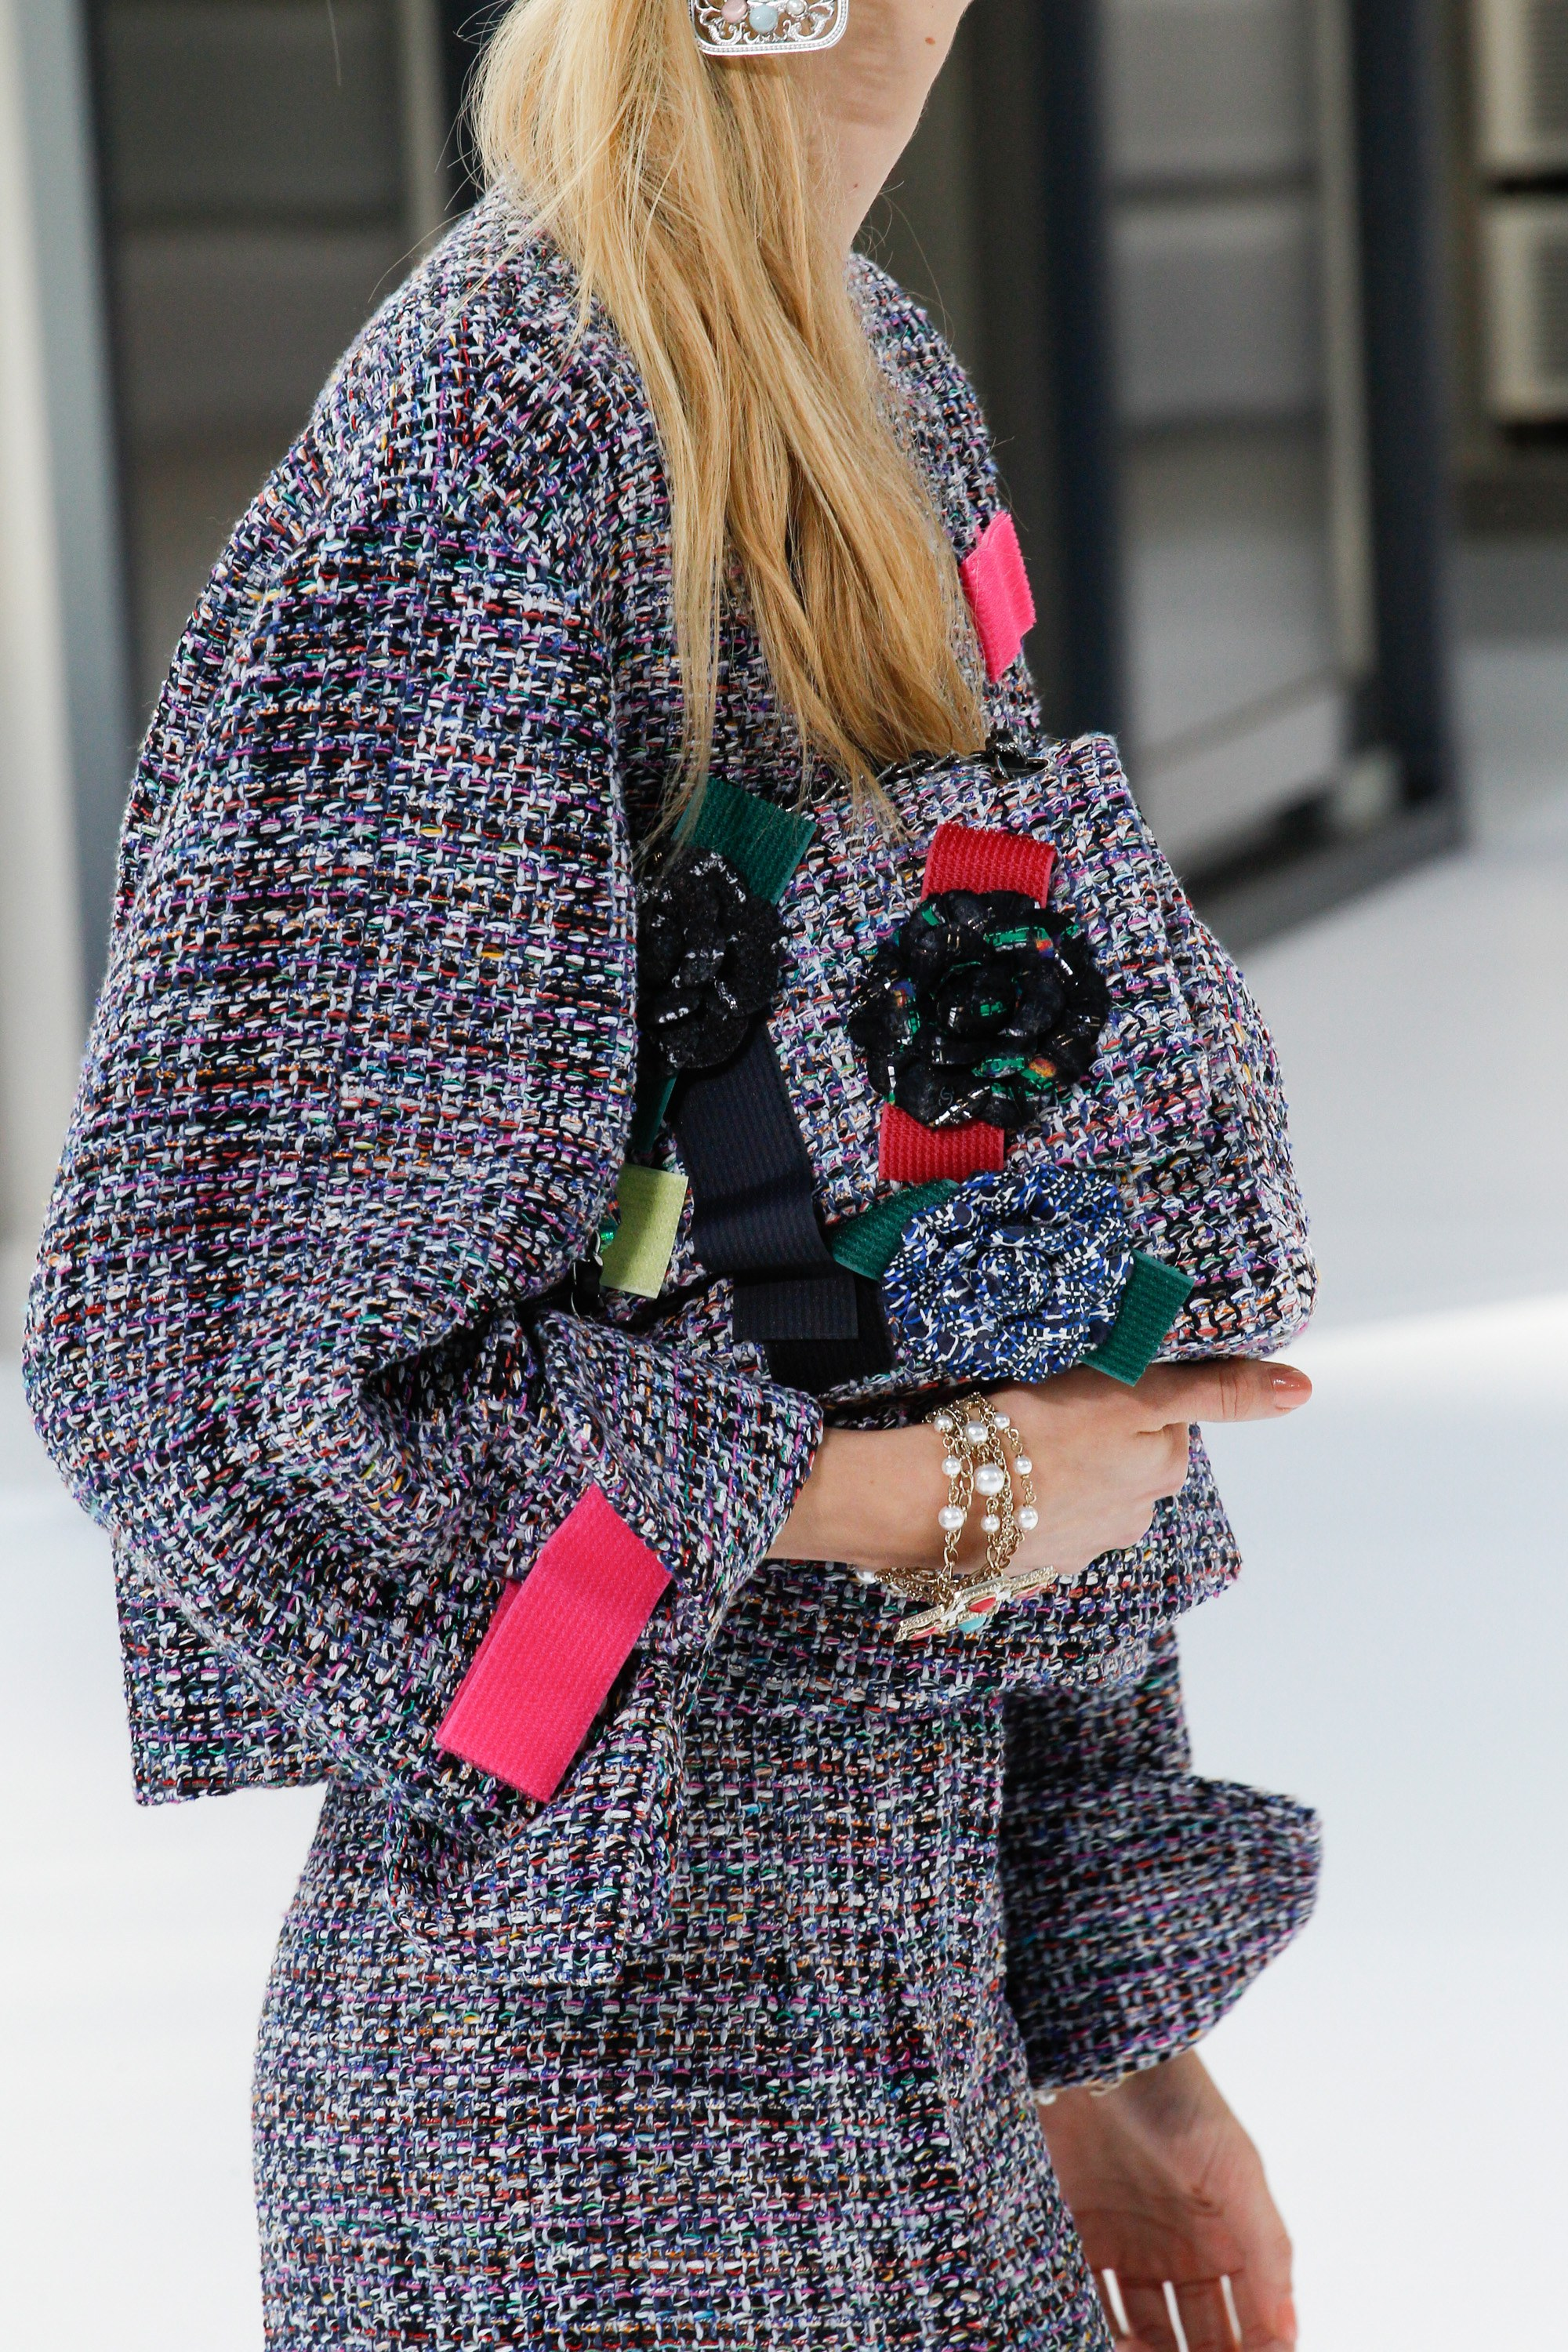 Chanel Spring Summer 2017 Runway Bag Collection  21f0090bb3b